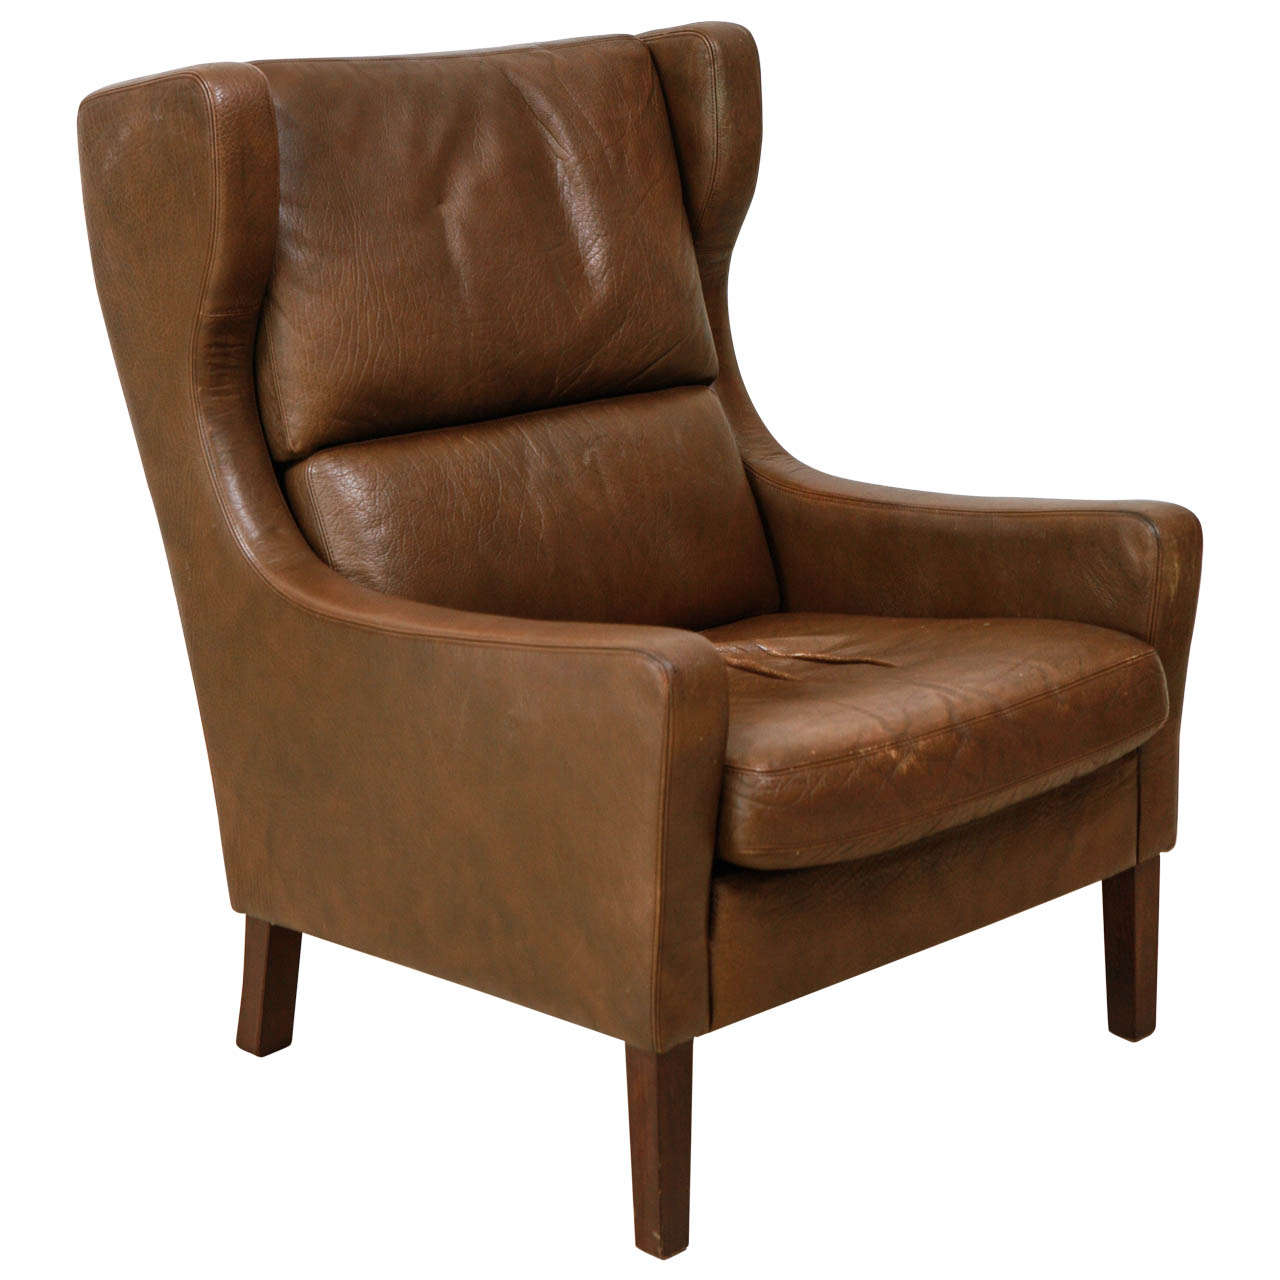 Genial High Back Danish Leather Lounge Chair In The Style Of Borge Mogensen For  Sale